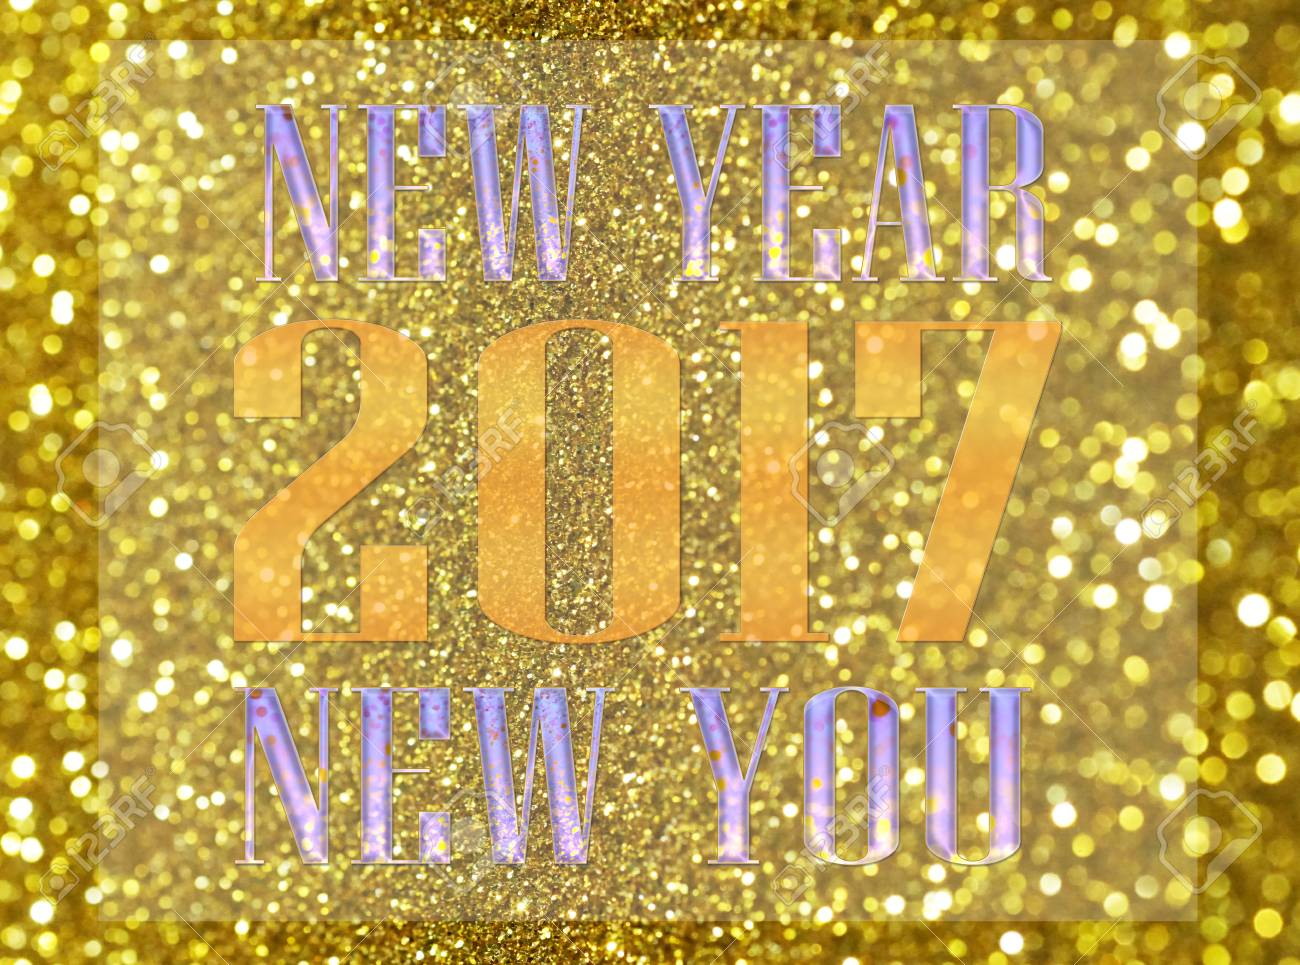 happy new year card new year new beginnings loading to new year on glitter